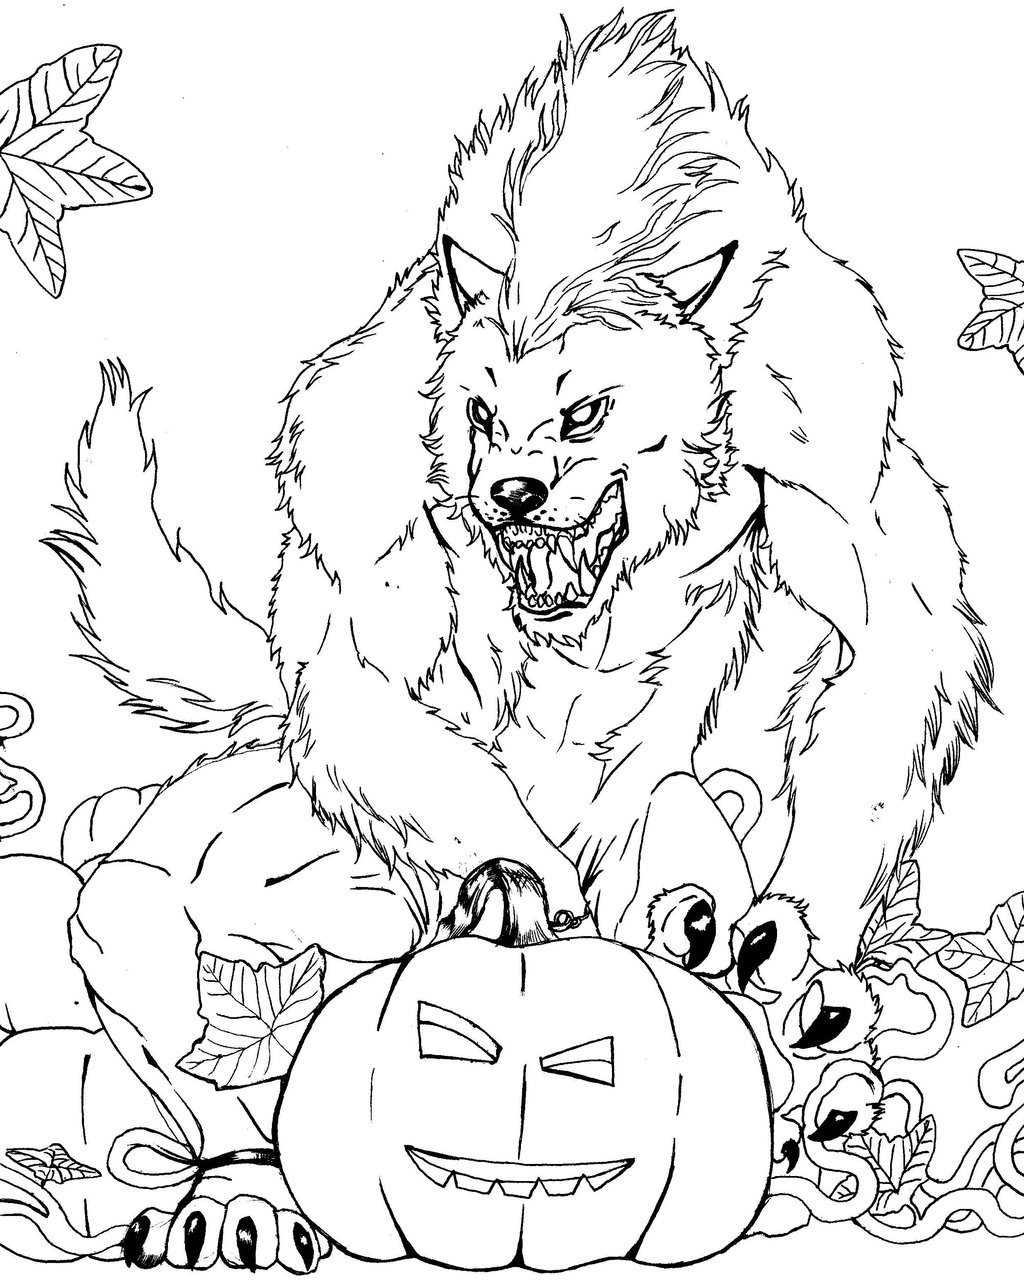 Drawn wolfman coloring page Free Monsters Werewolf Coloring Page